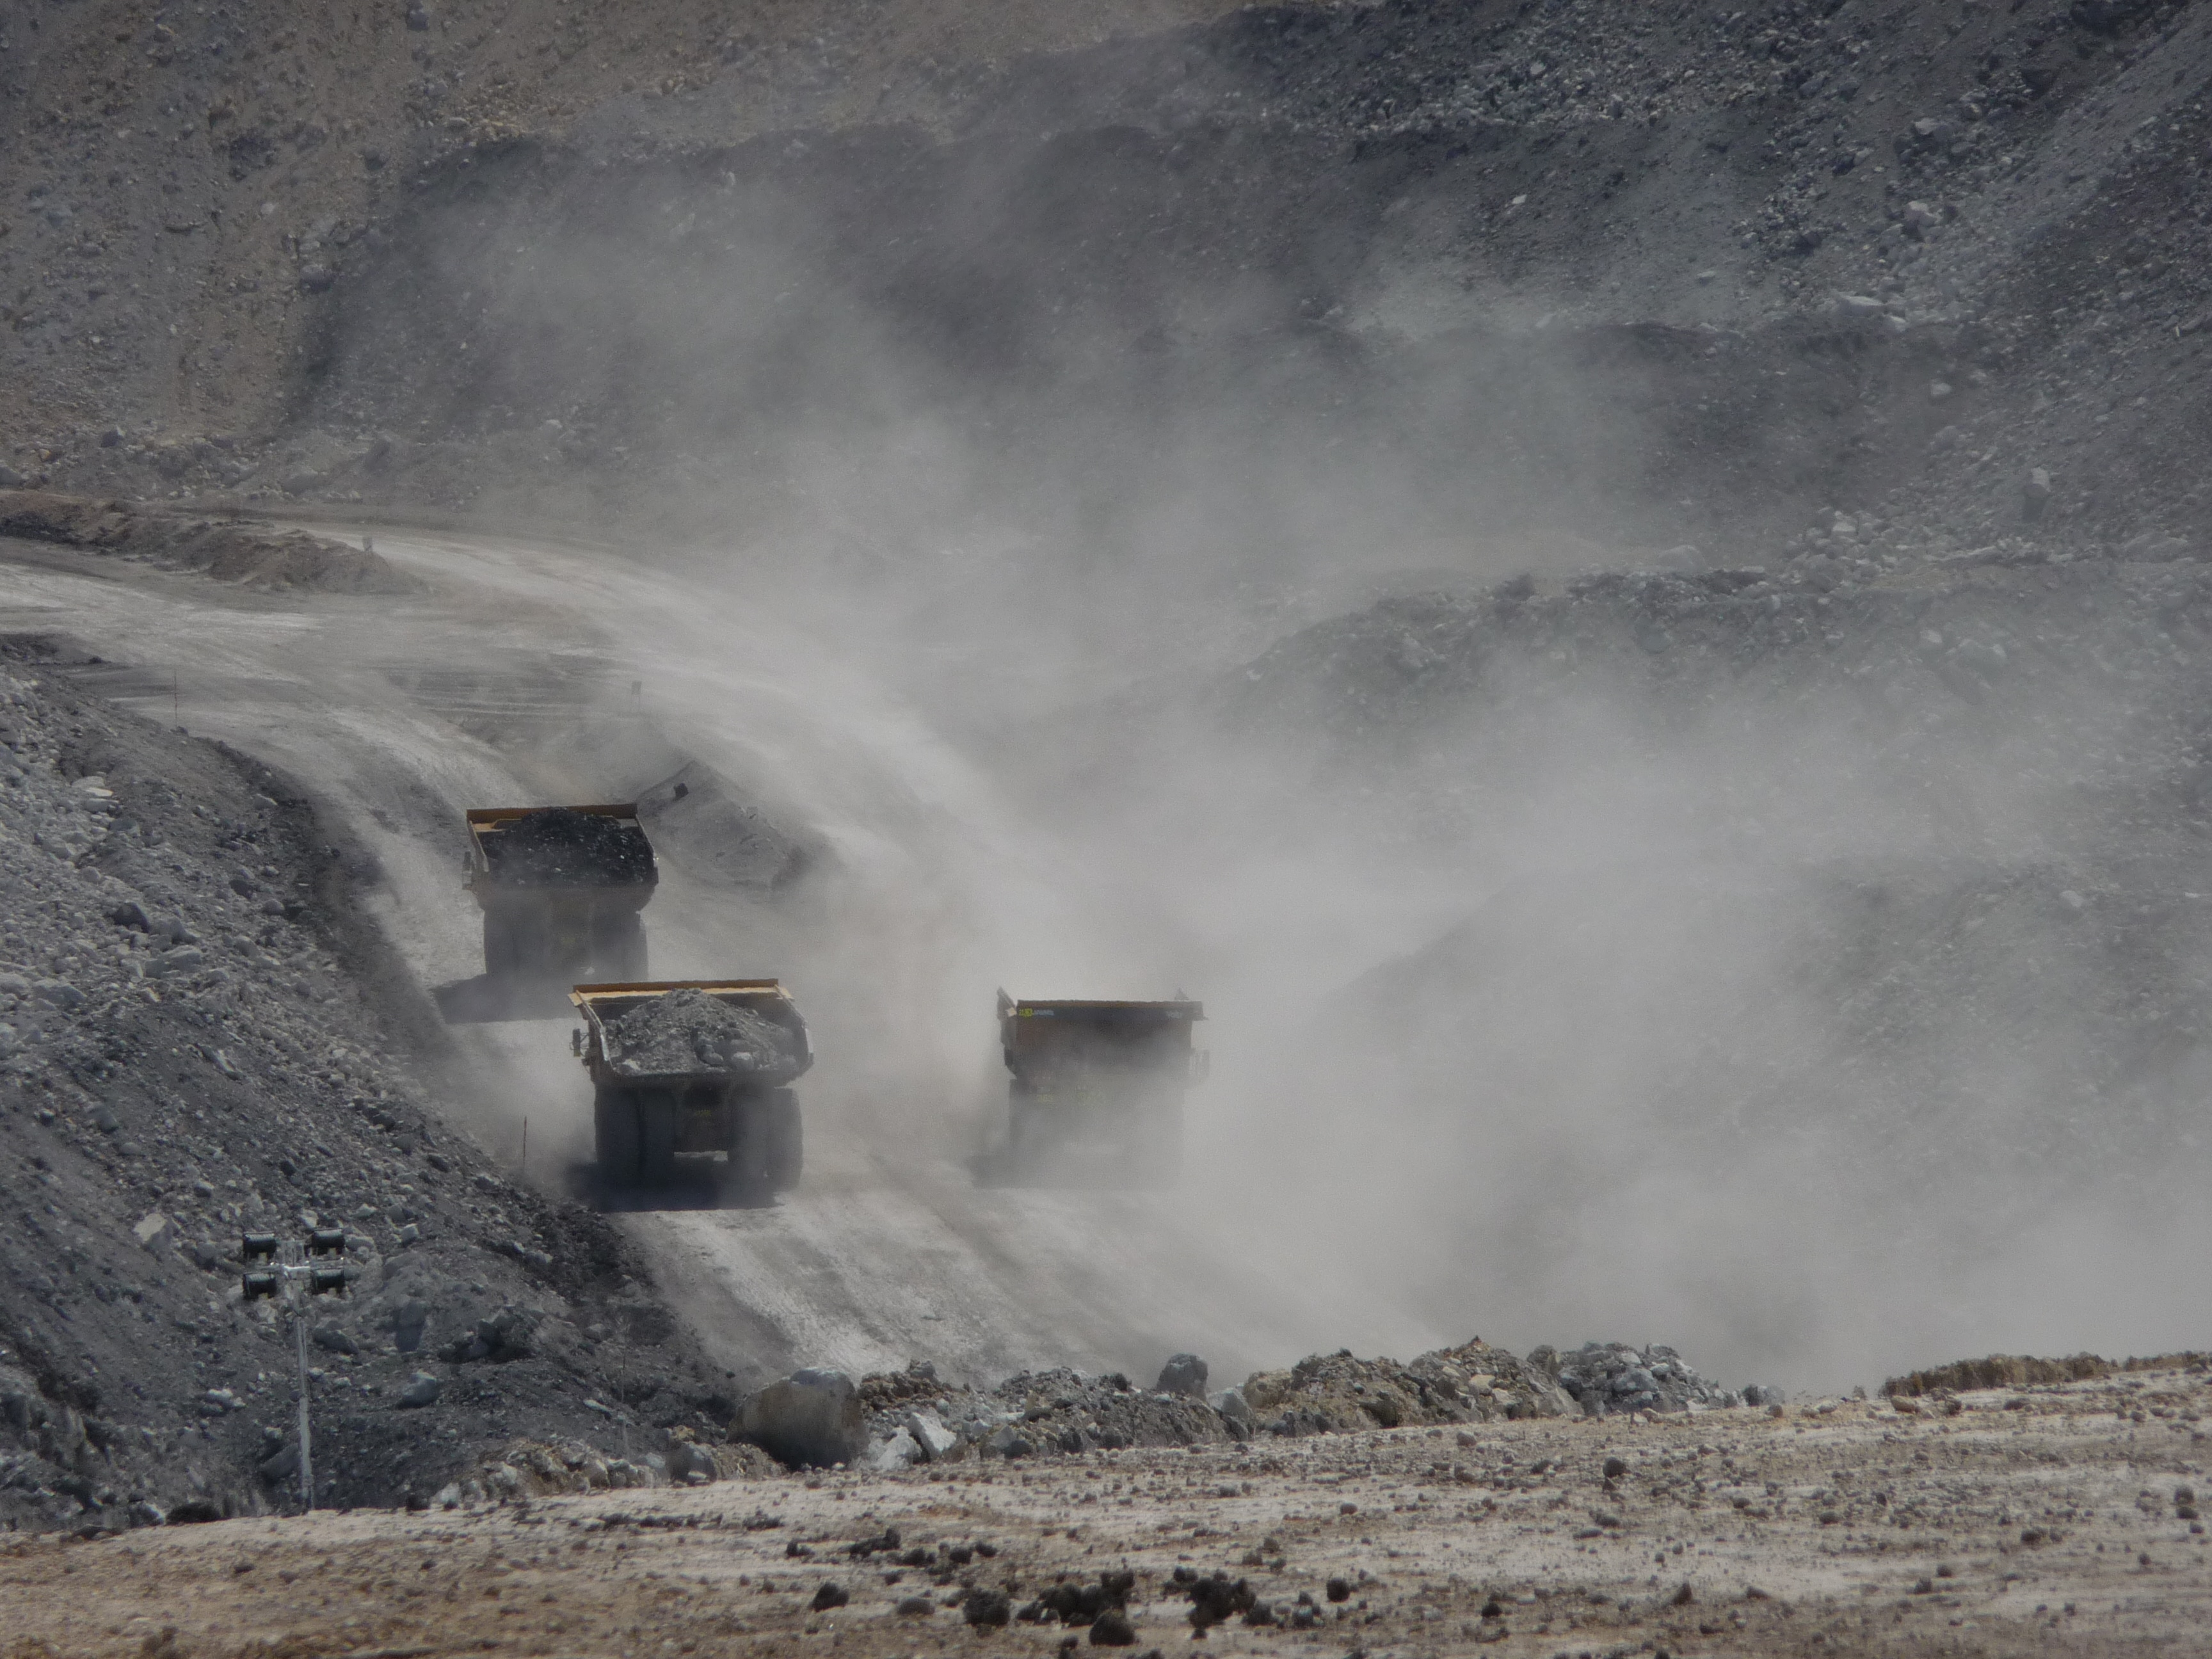 Haul trucks are the nemesis of dust safety in mine sites.